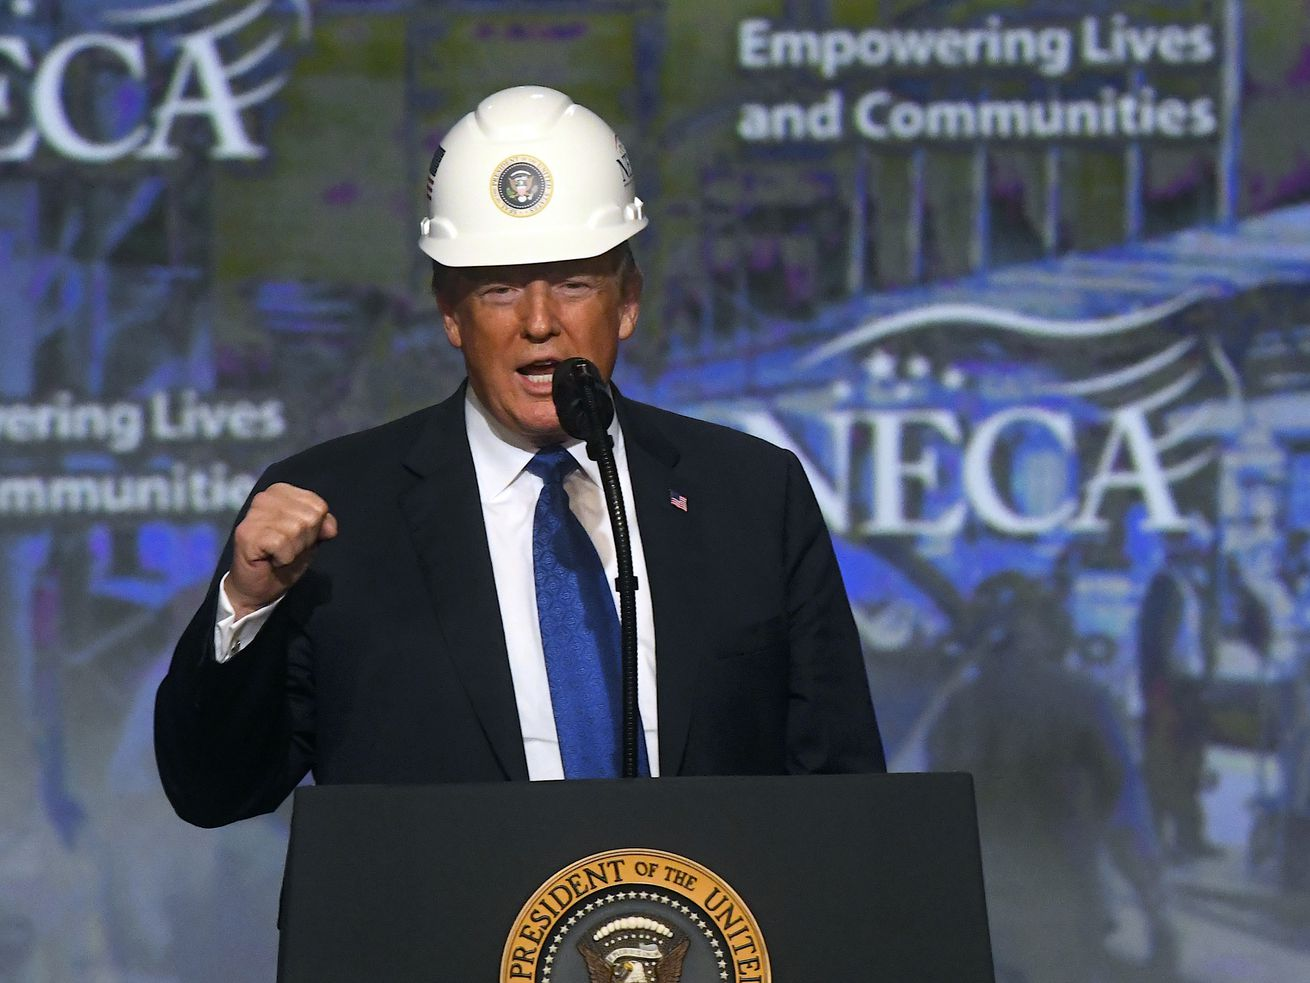 President Trump wears a hard hat as he addresses the National Electrical Contractors Convention on October 2, 2018, in Philadelphia.